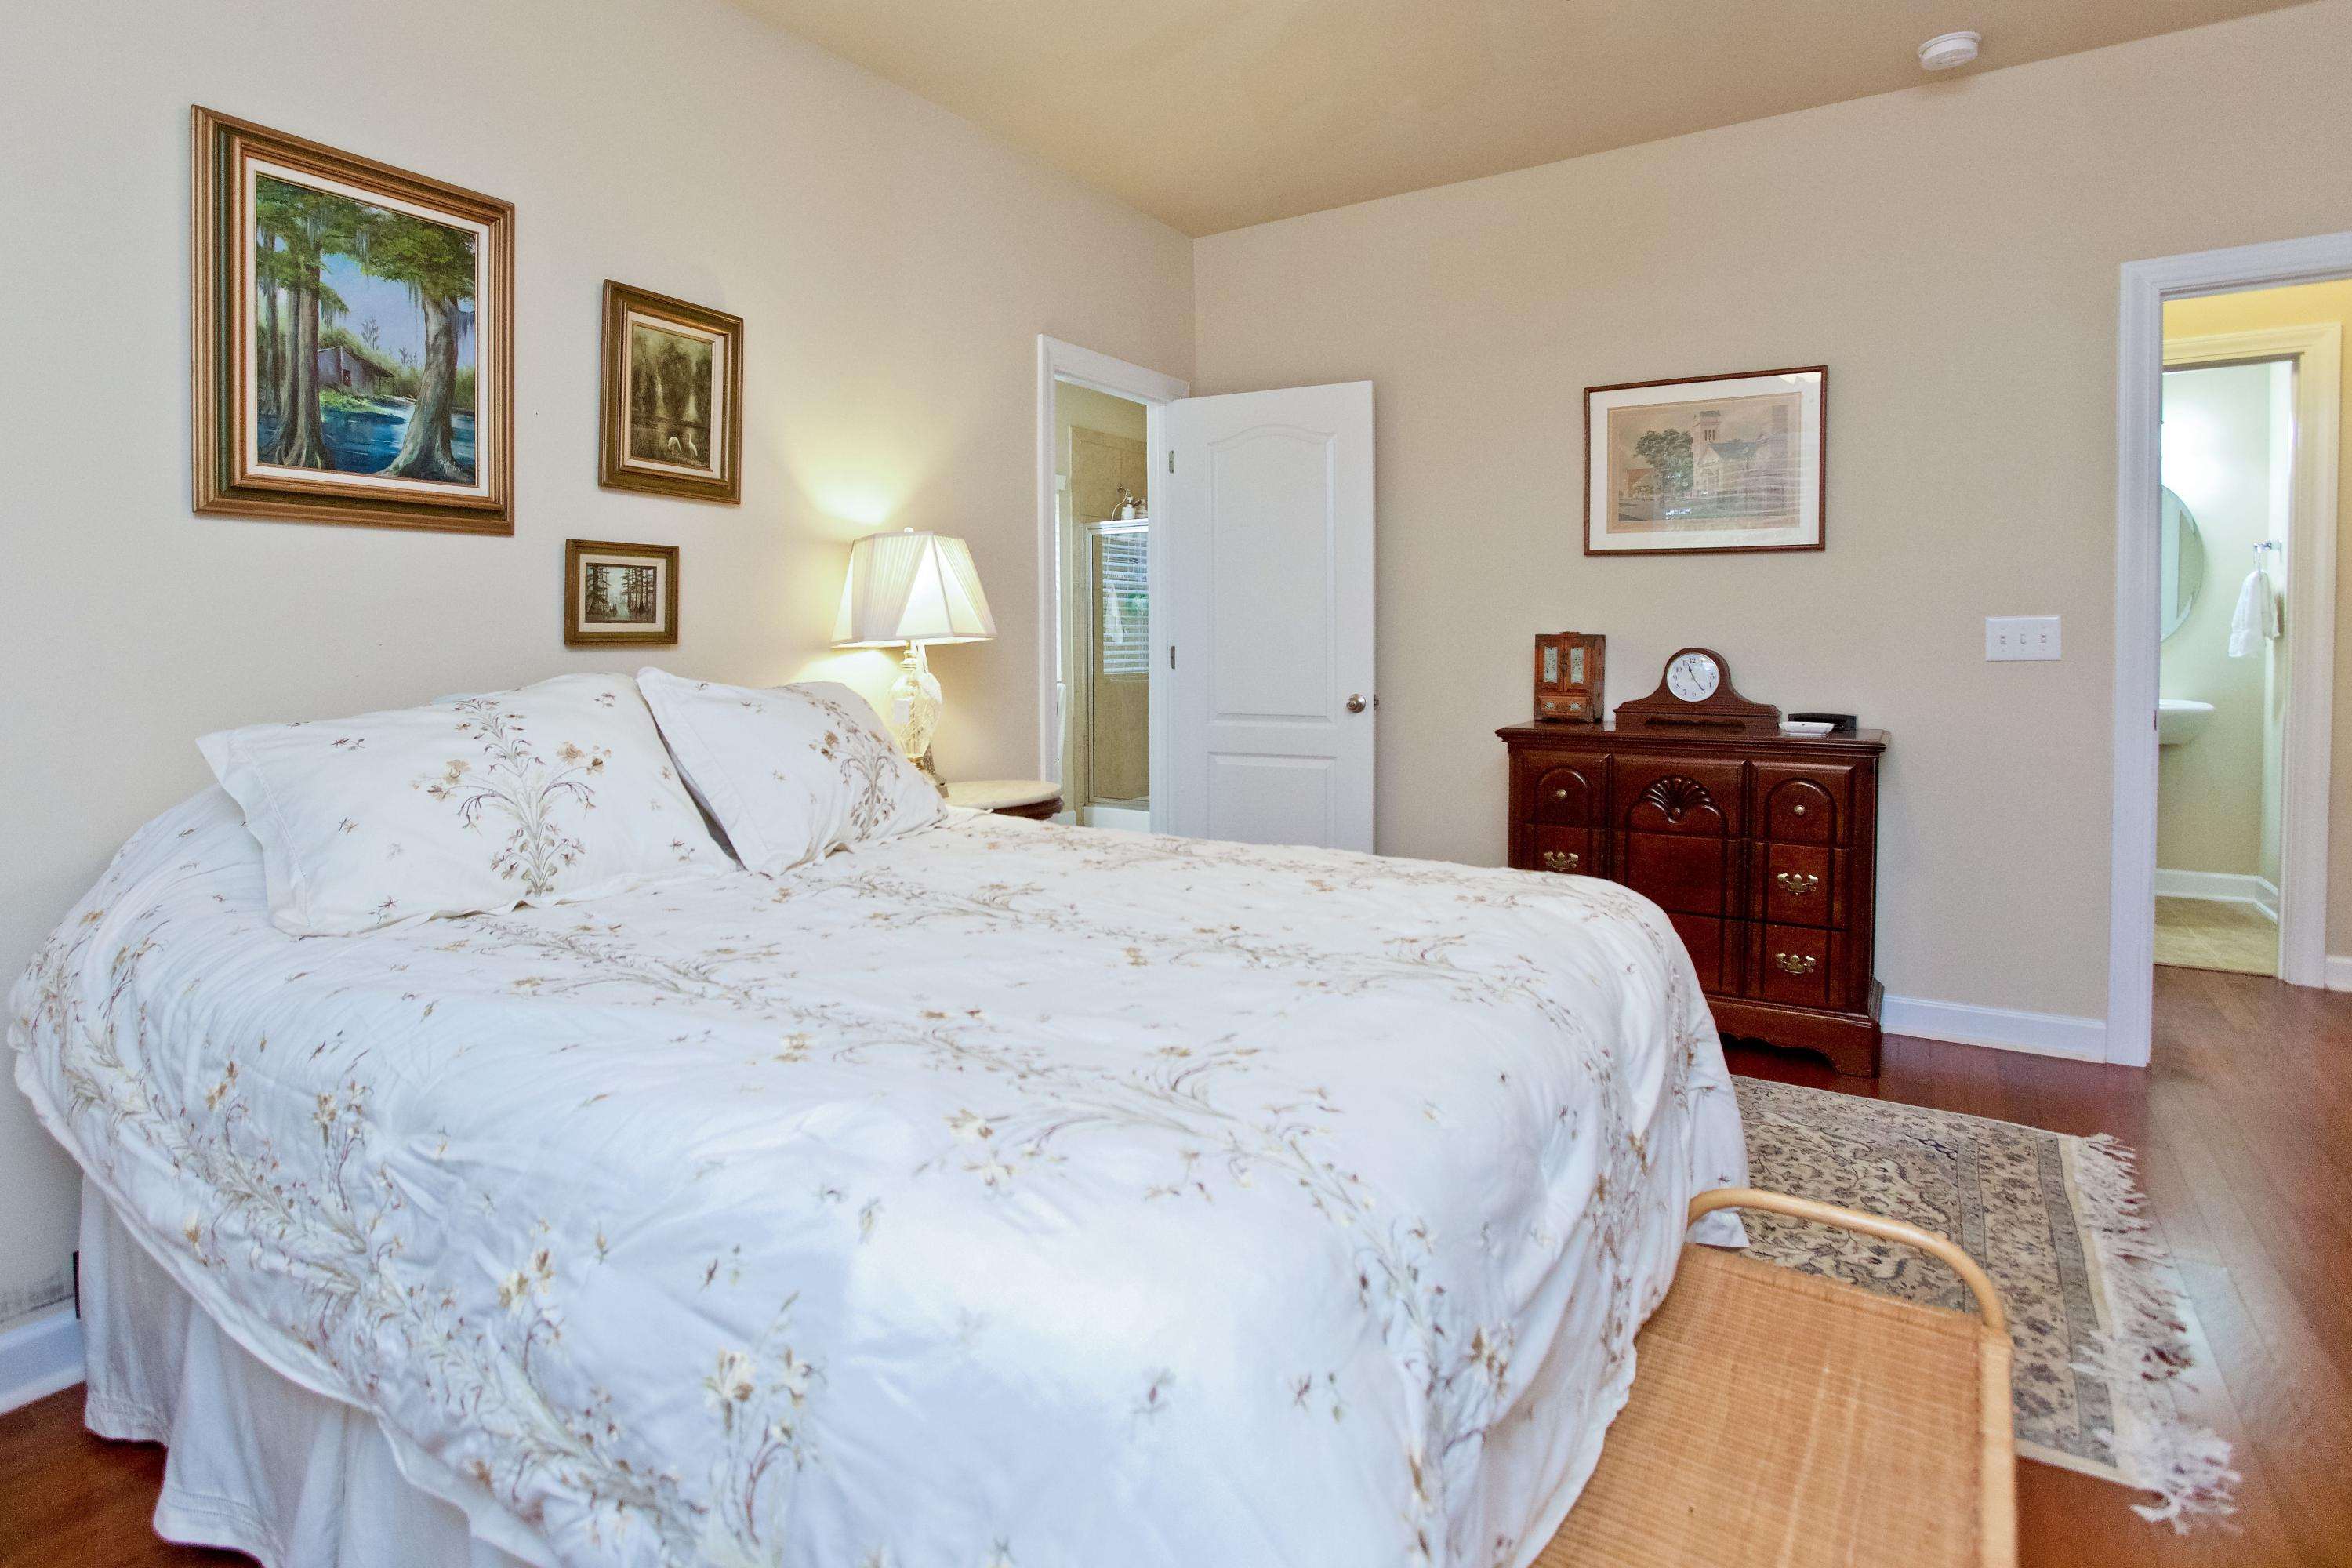 Appian Way Homes For Sale - 8473 Athens, North Charleston, SC - 21